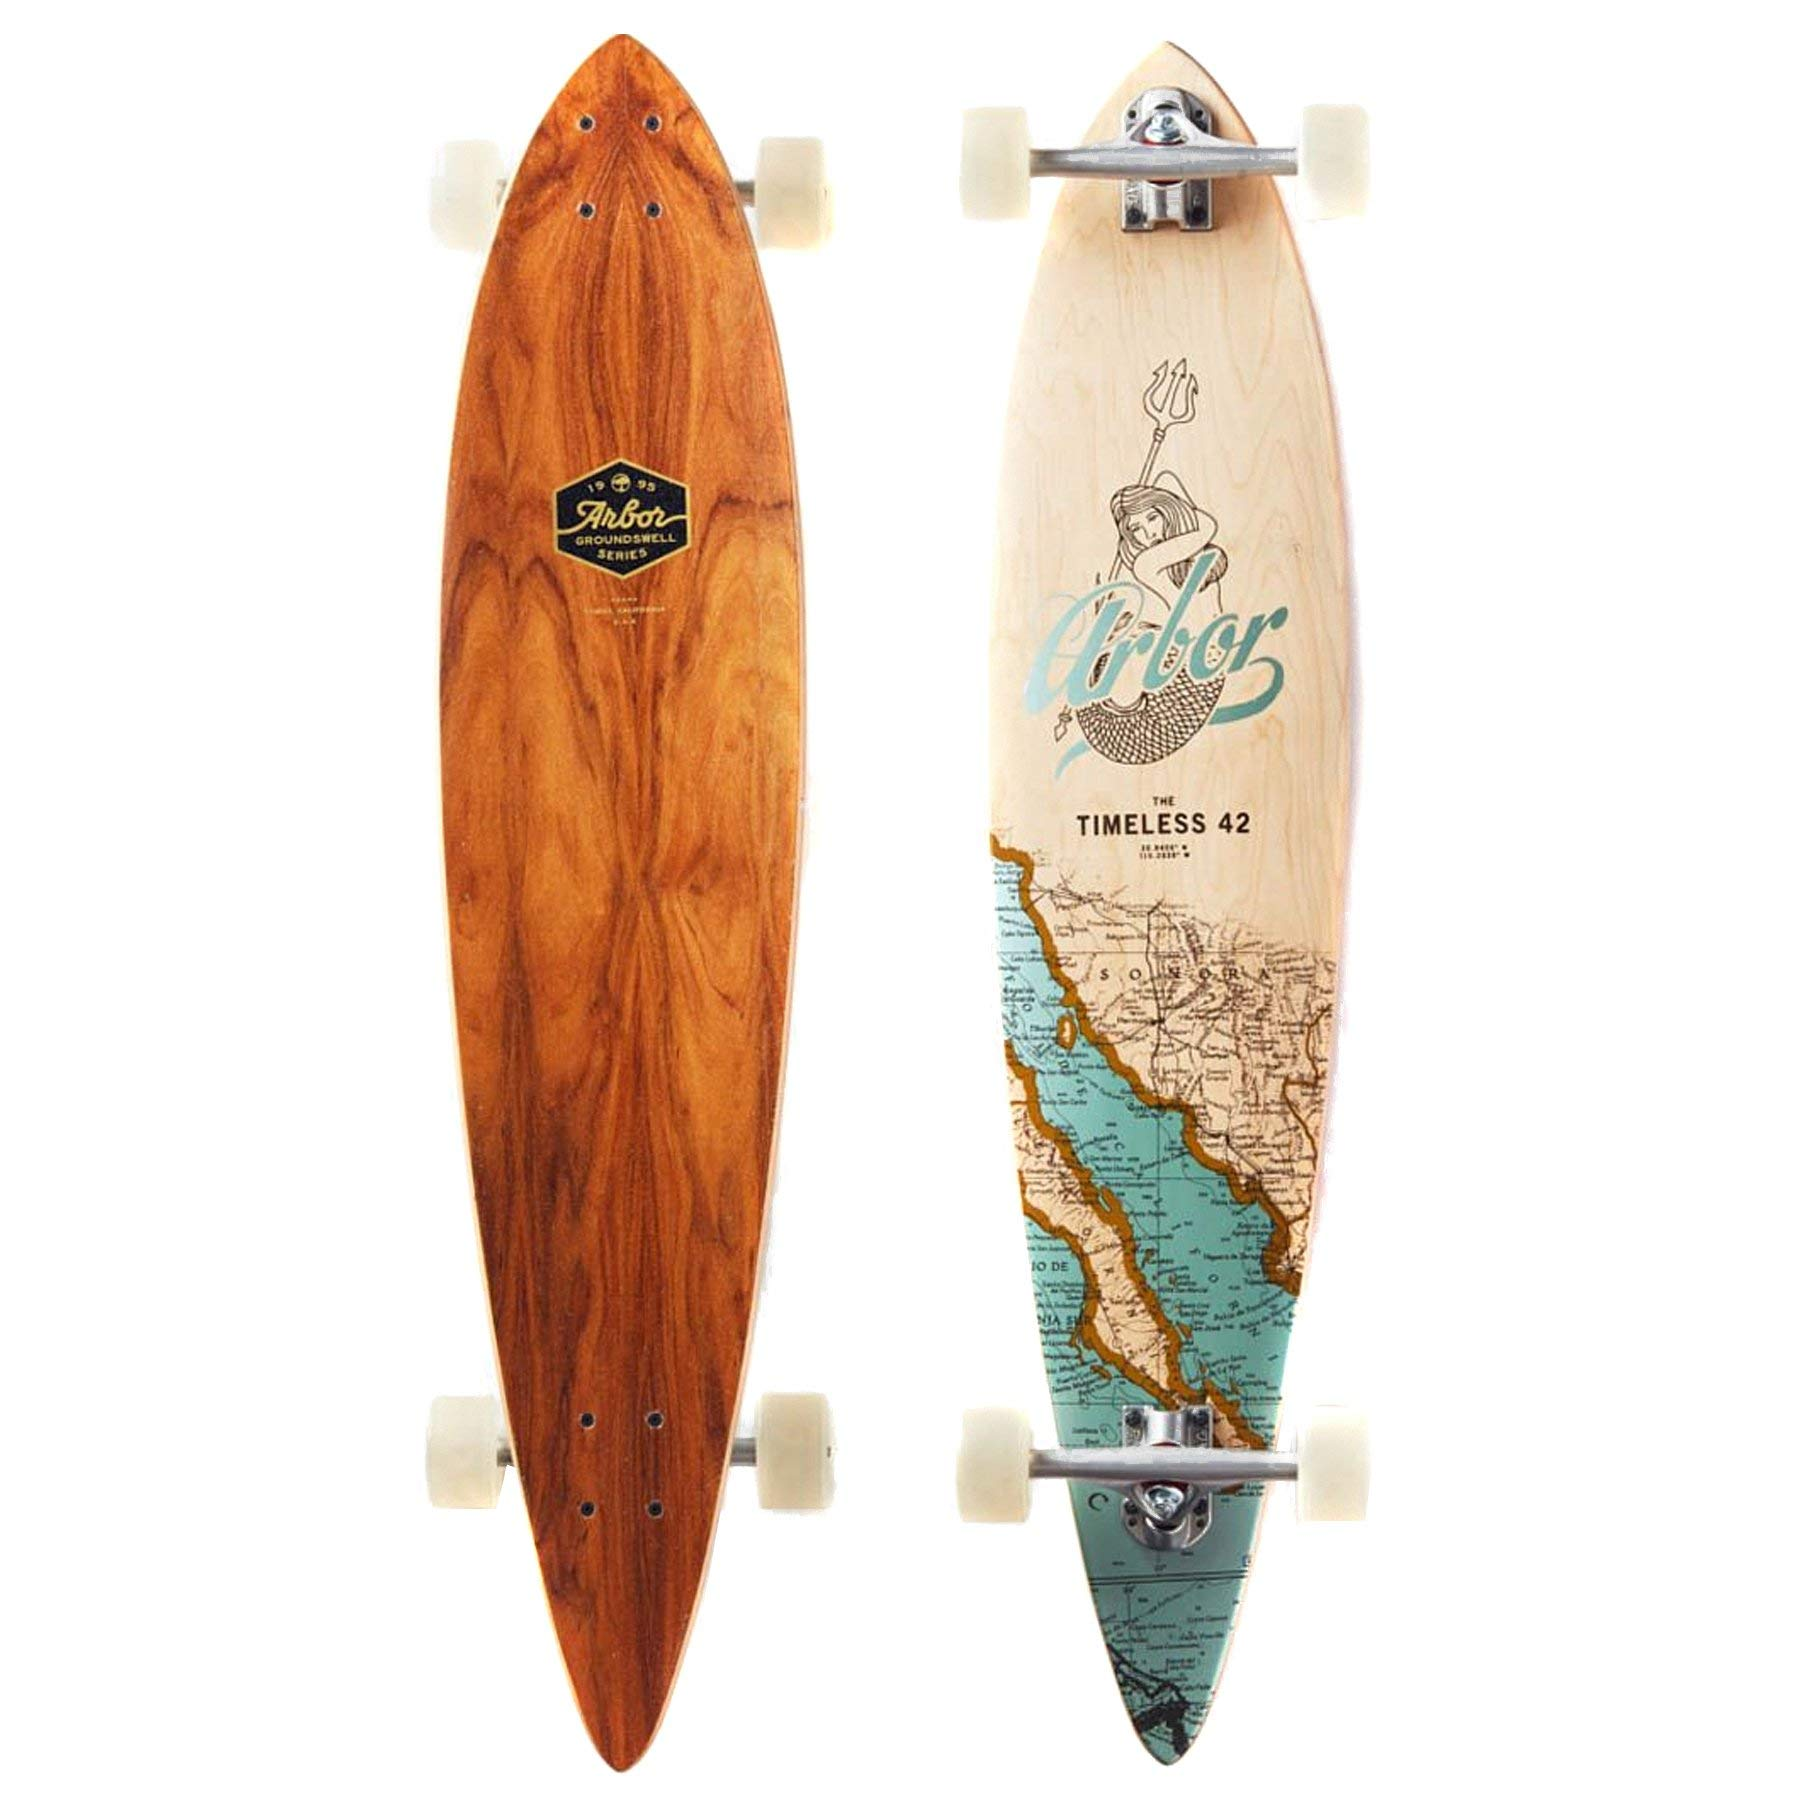 "Arbor Timeless 42 Groundswell Complete Skateboard, Assorted, 42"" L x 9.00"" W"